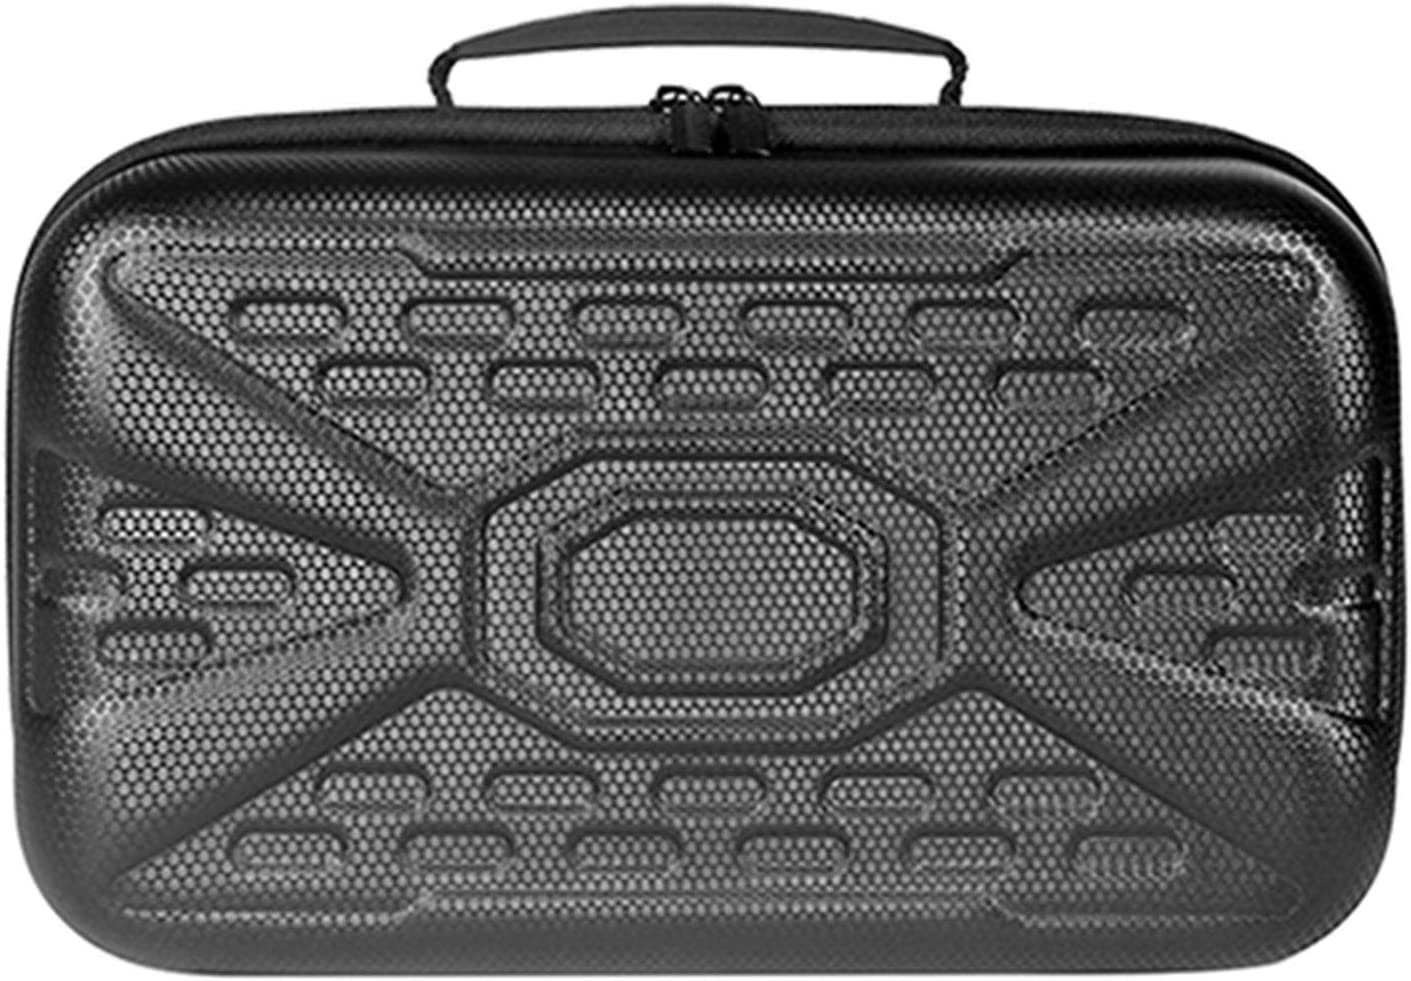 Voyoo Hard Carrying Case Game Max 65% OFF Bag San Francisco Mall Protective Console Cas Storage